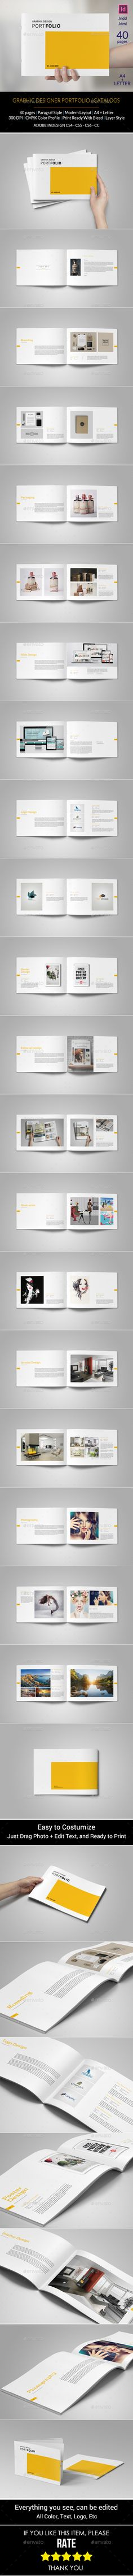 Graphic Design Portfolio Template on Behance Portfolio Design, Portfolio Book, Portfolio Layout, Template Portfolio, Graphisches Design, Cover Design, Layout Design, Design Brochure, Booklet Design